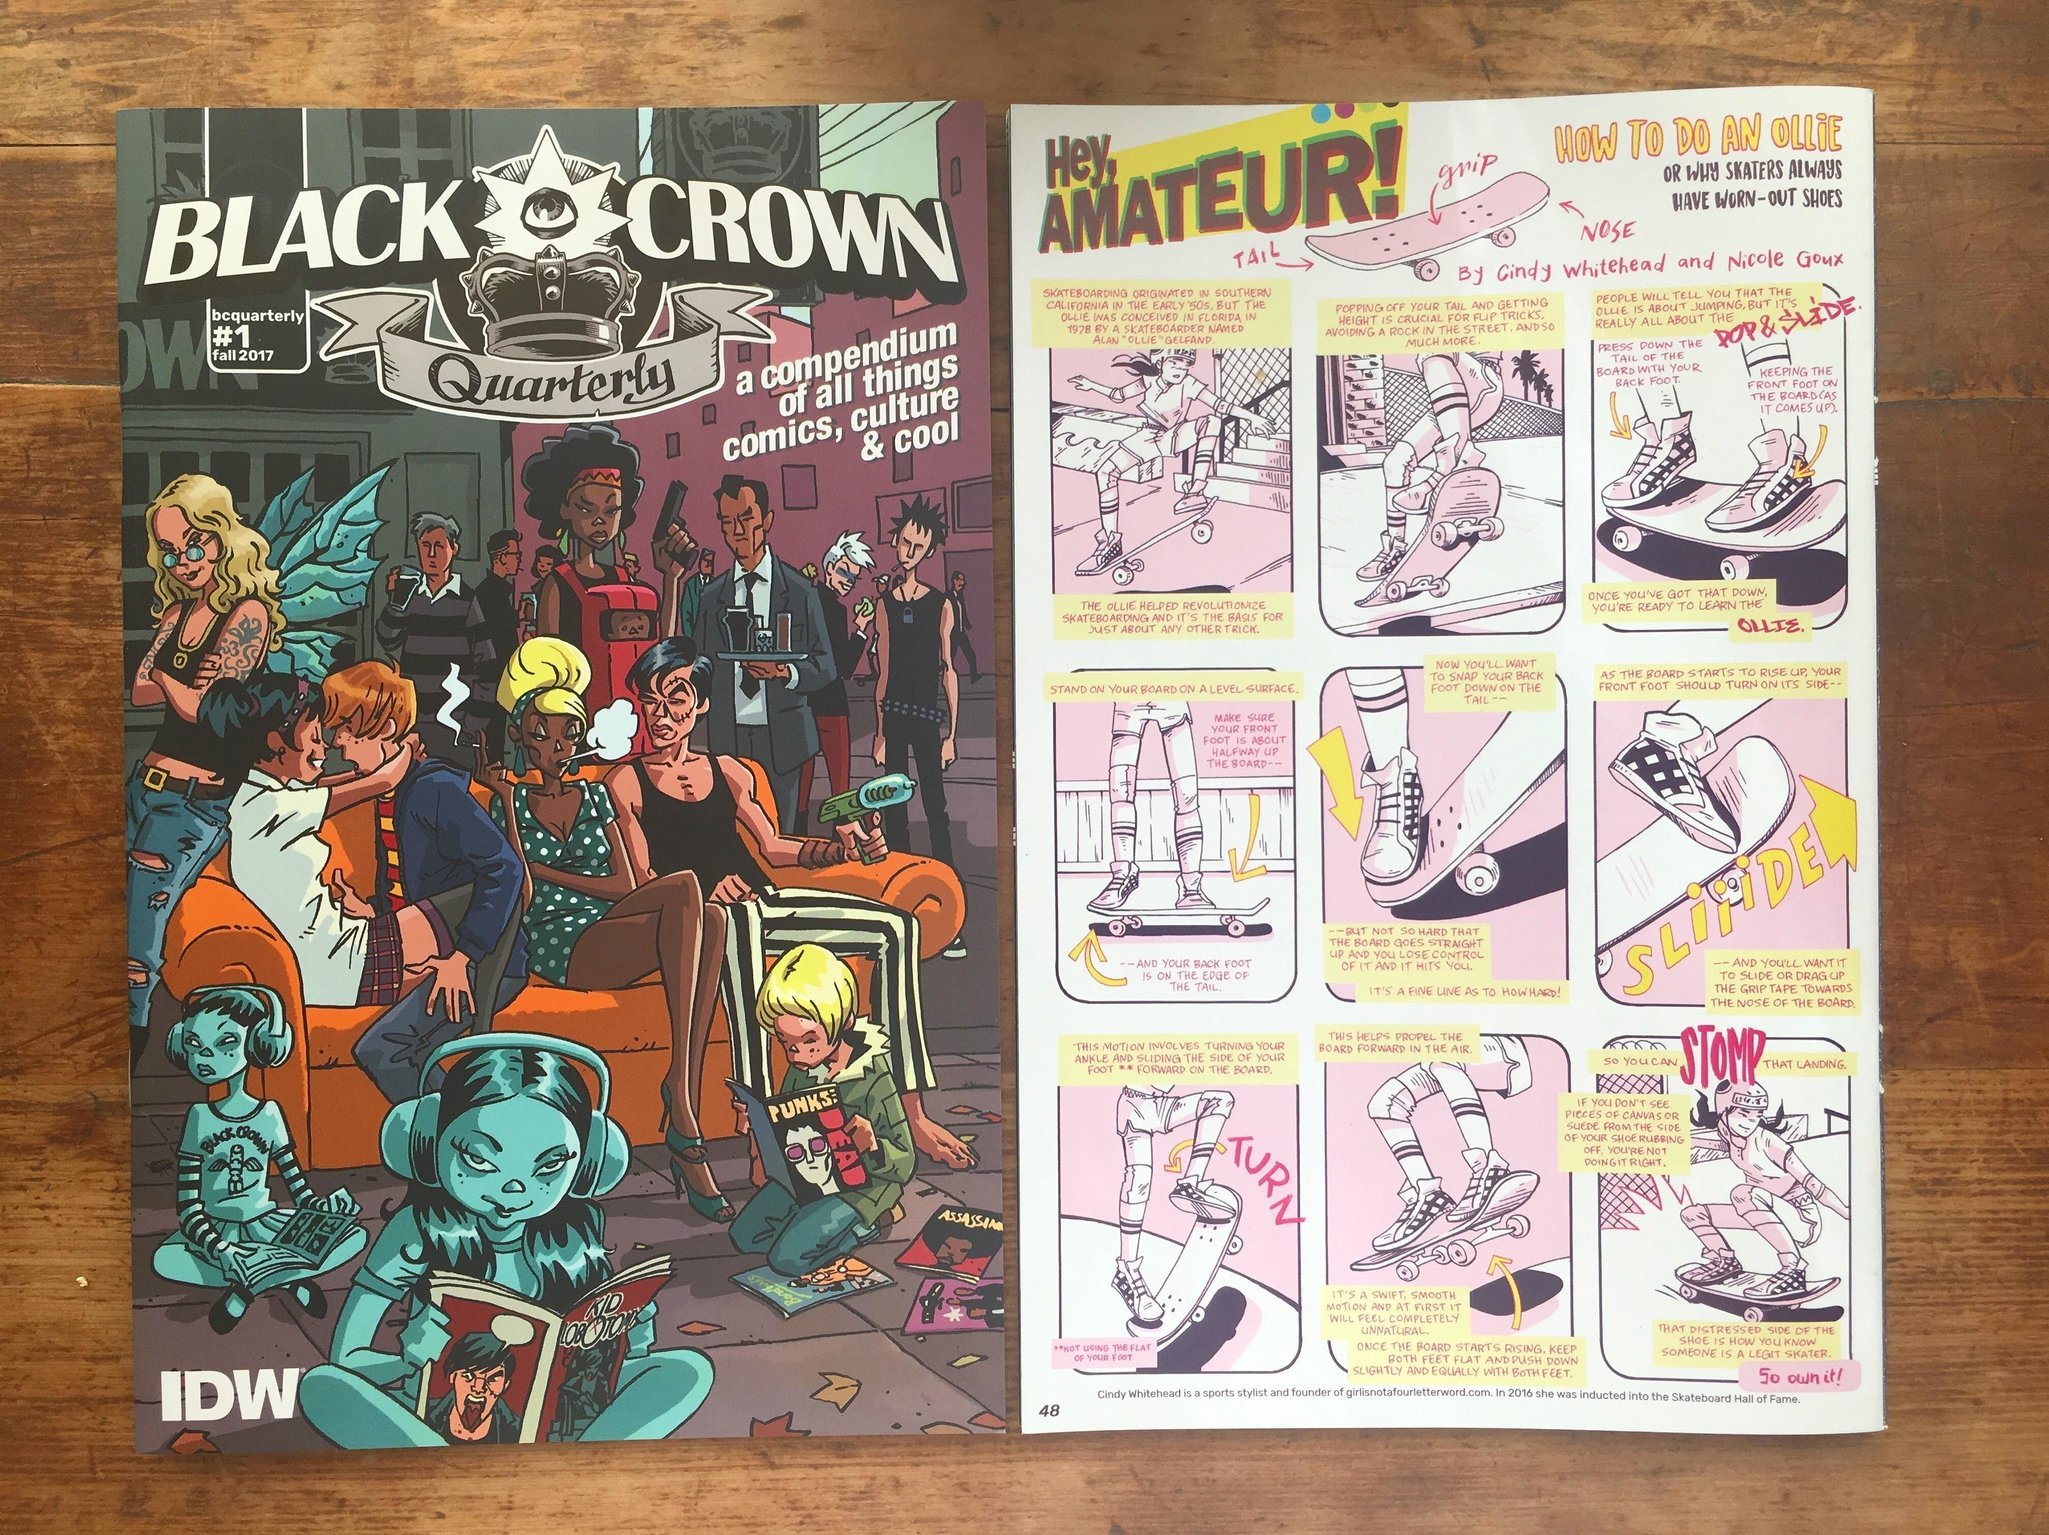 Black Crown Quarterly